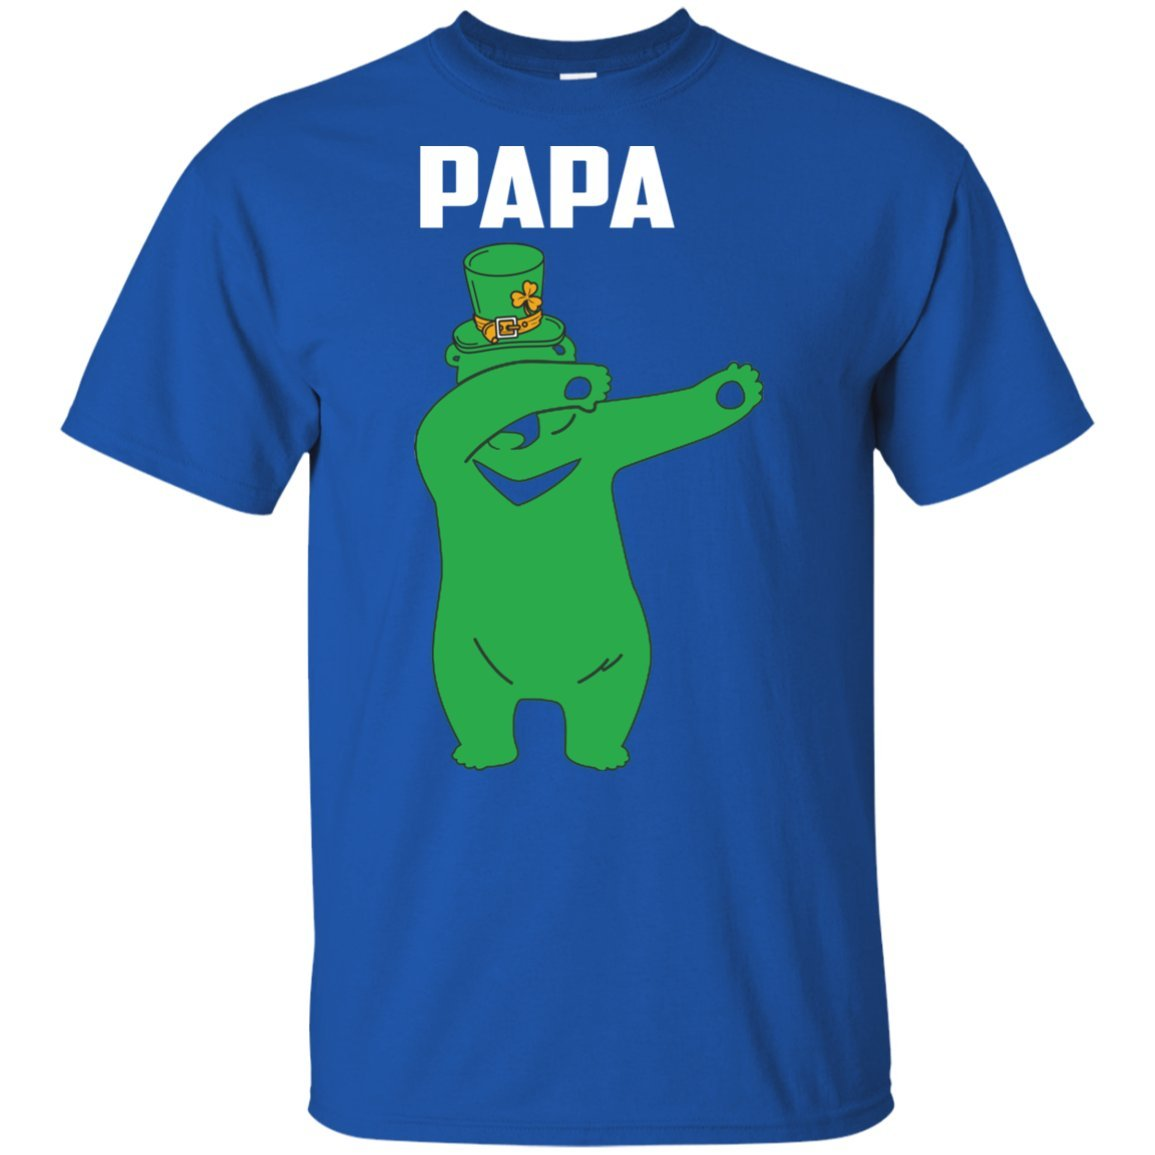 Irish St Patrick S Day T Shirt Gift For Son Daughter Girl Papa Bear Dabbing Dance On St Paddy Day Holiday